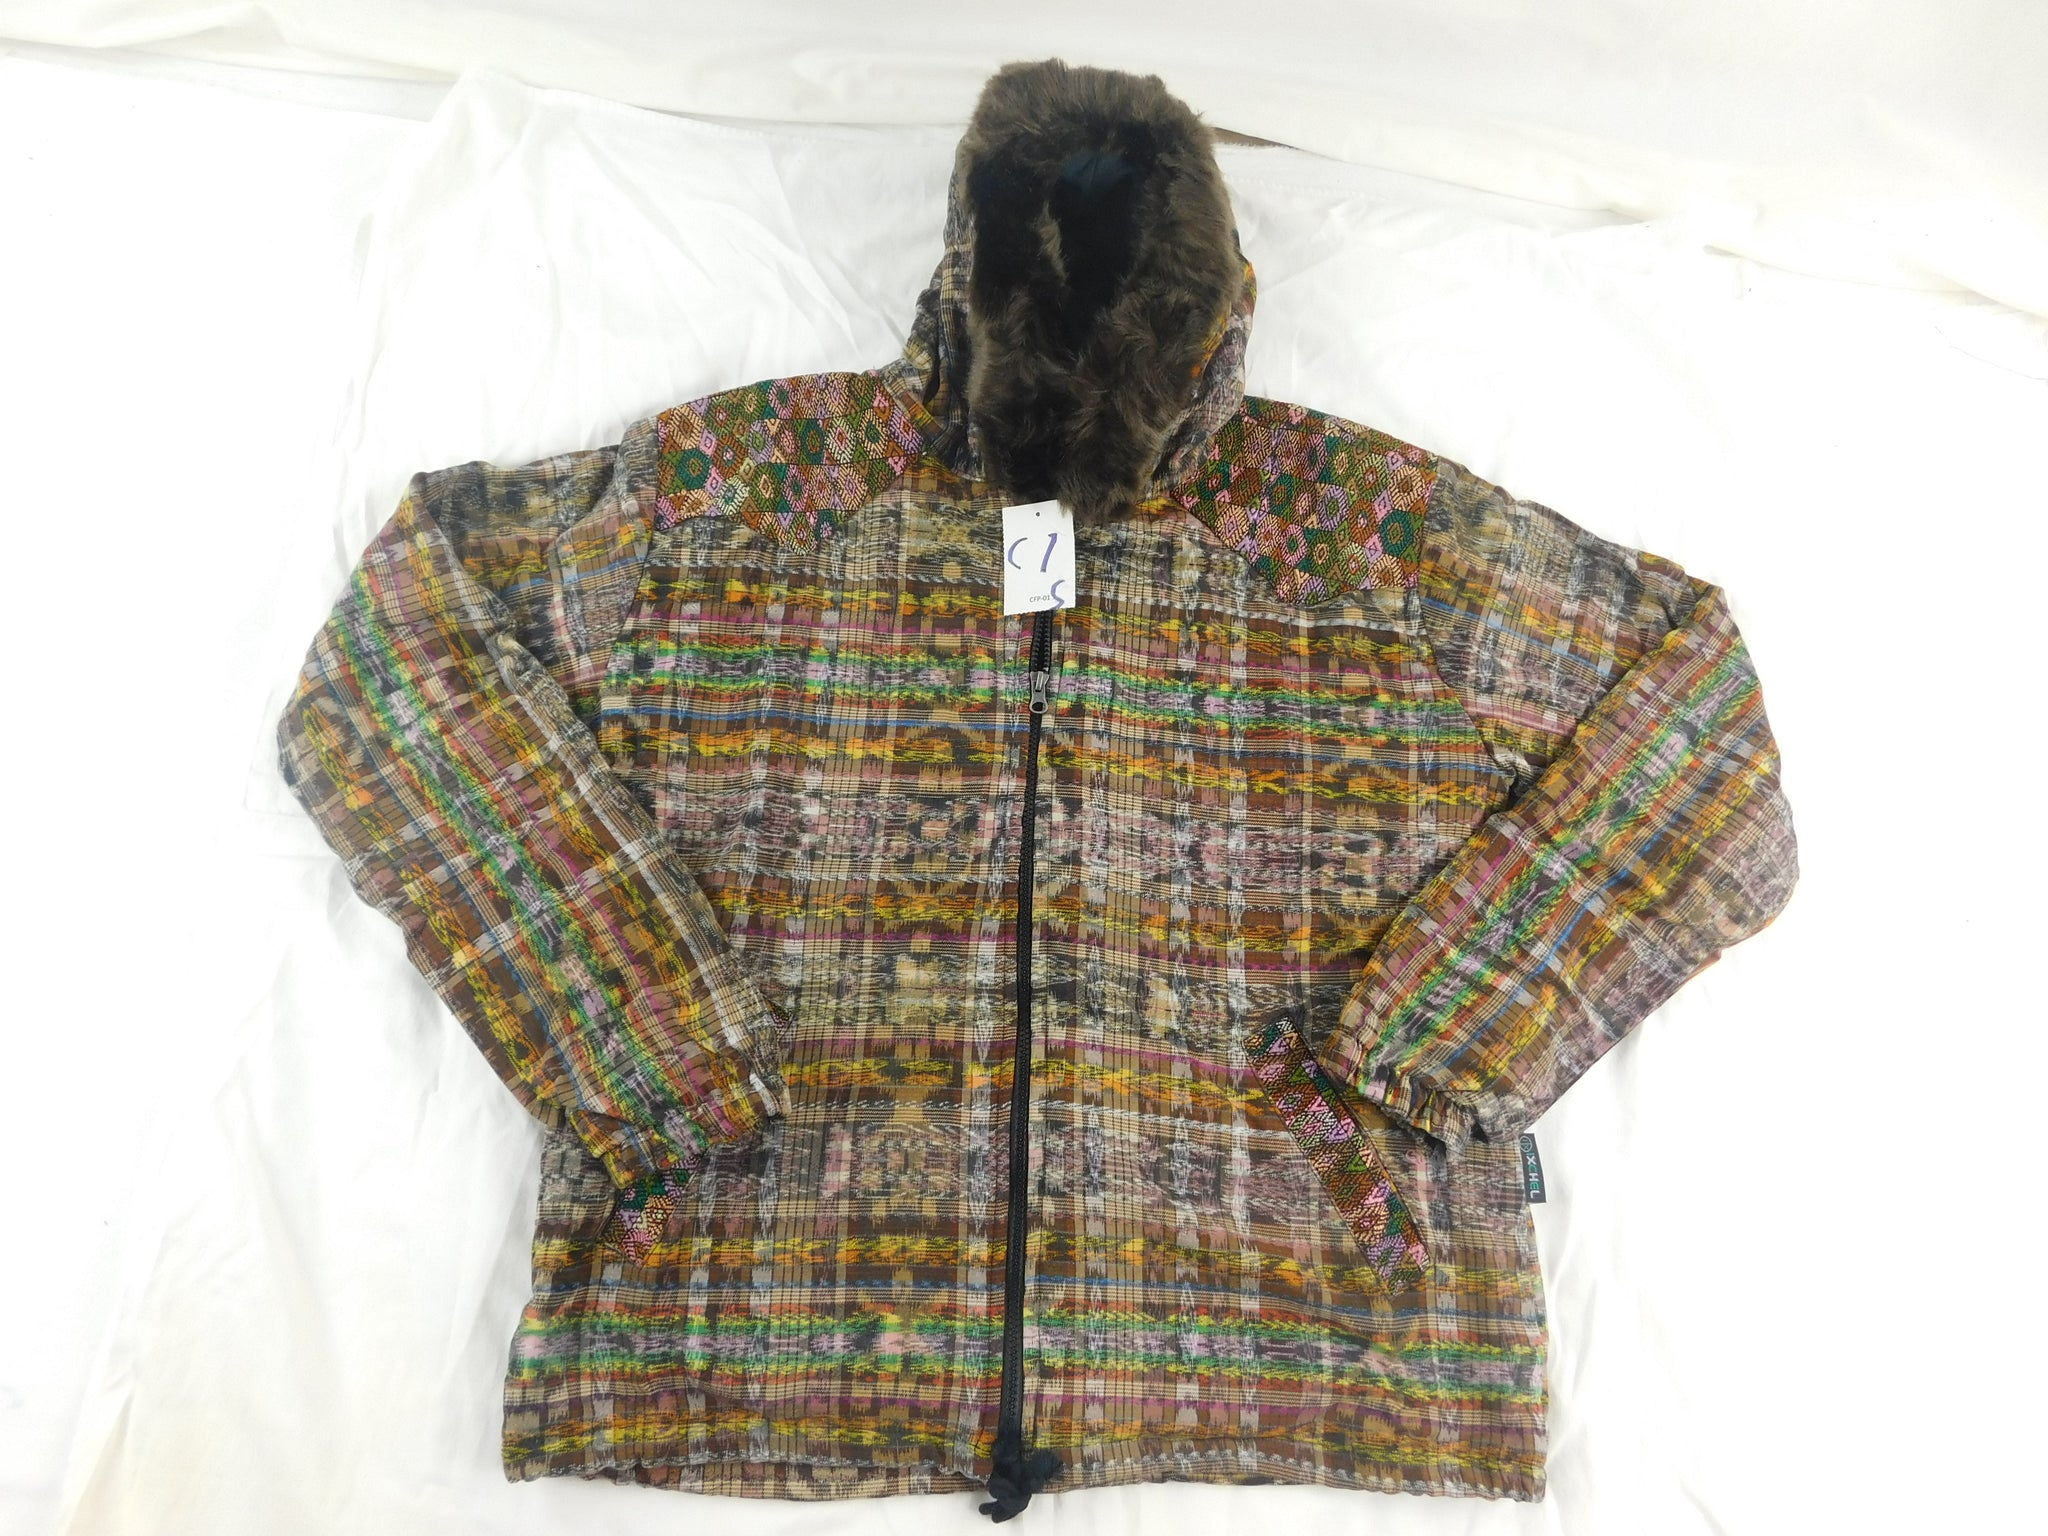 Hooded jacket in native Ikat and brocade fleece lined with fur hood